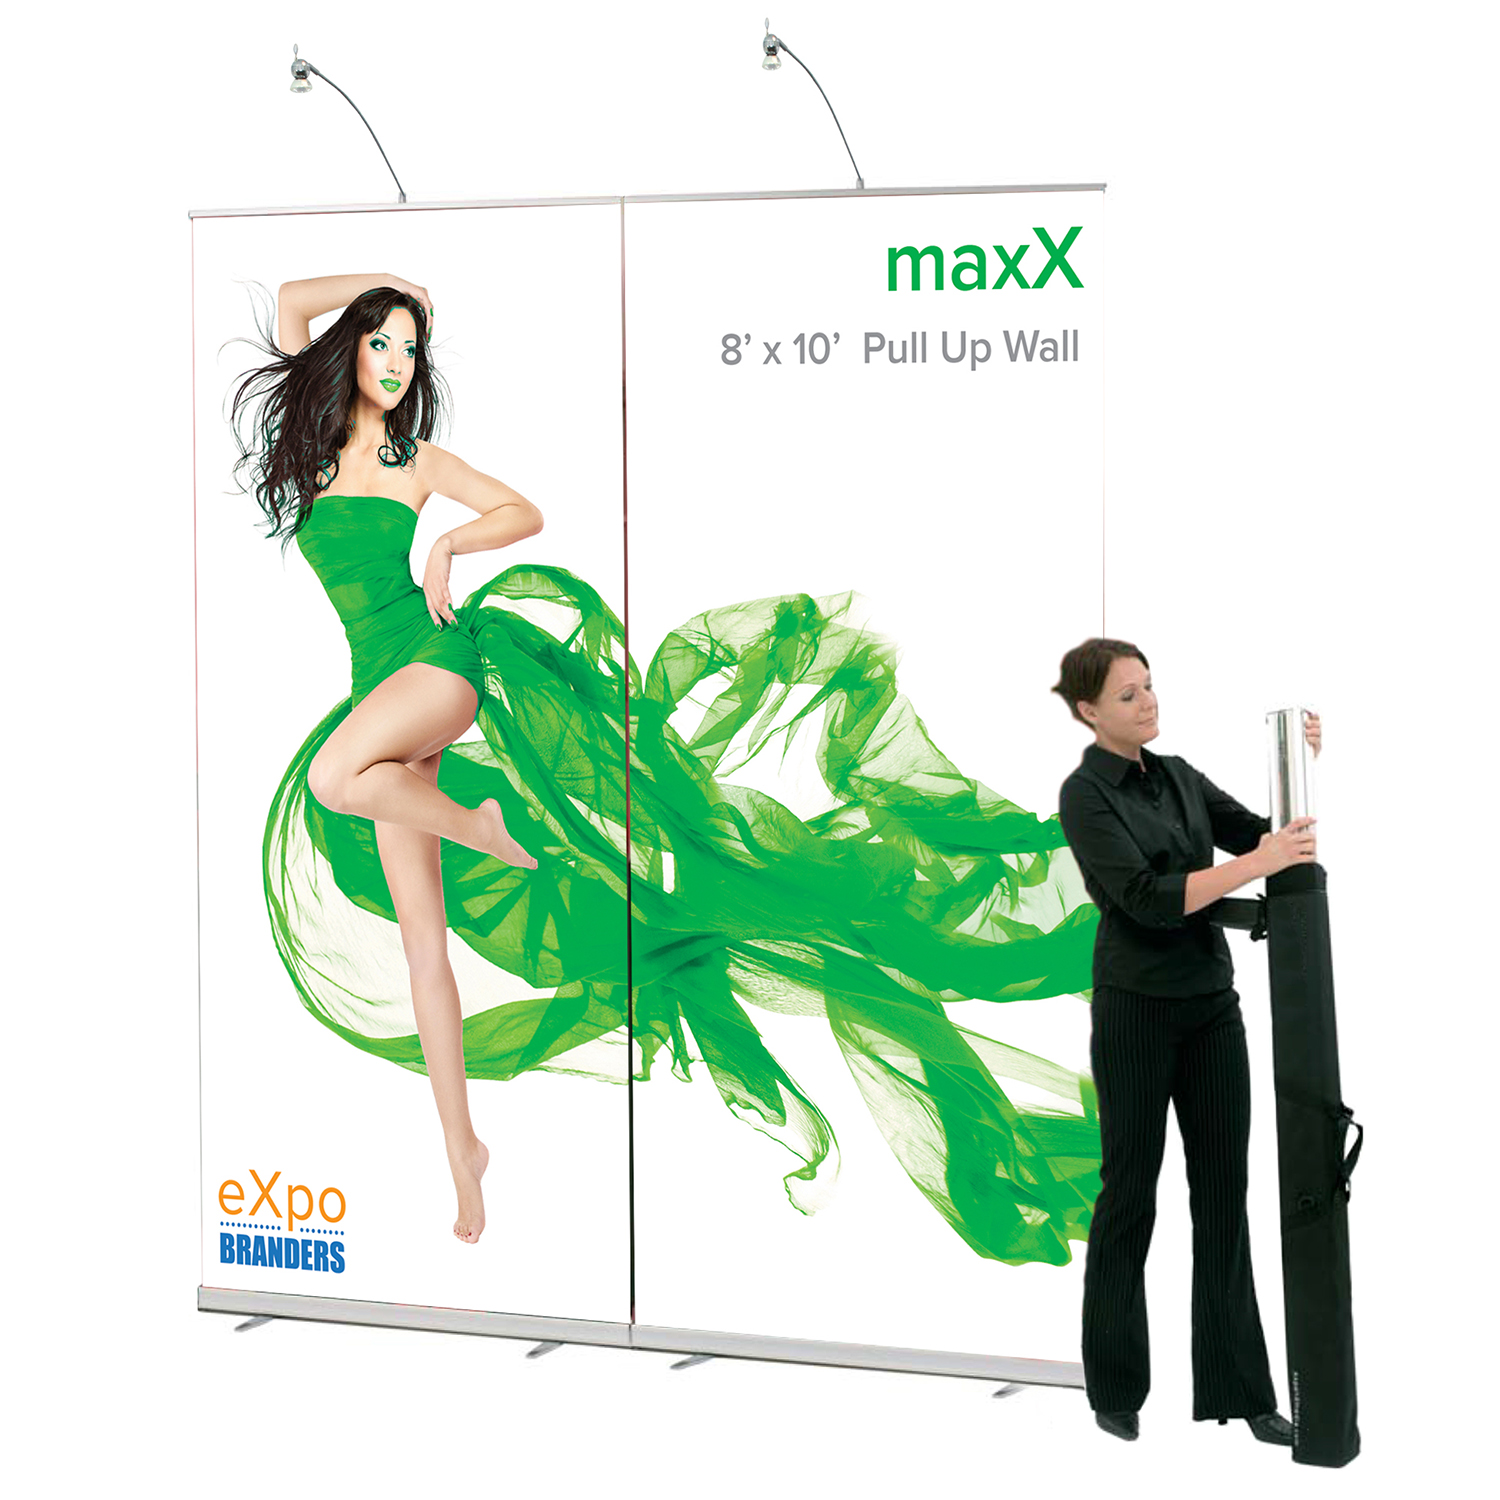 maxX-pull-up-banner-walls-arlington-va-dc-pa-nyc